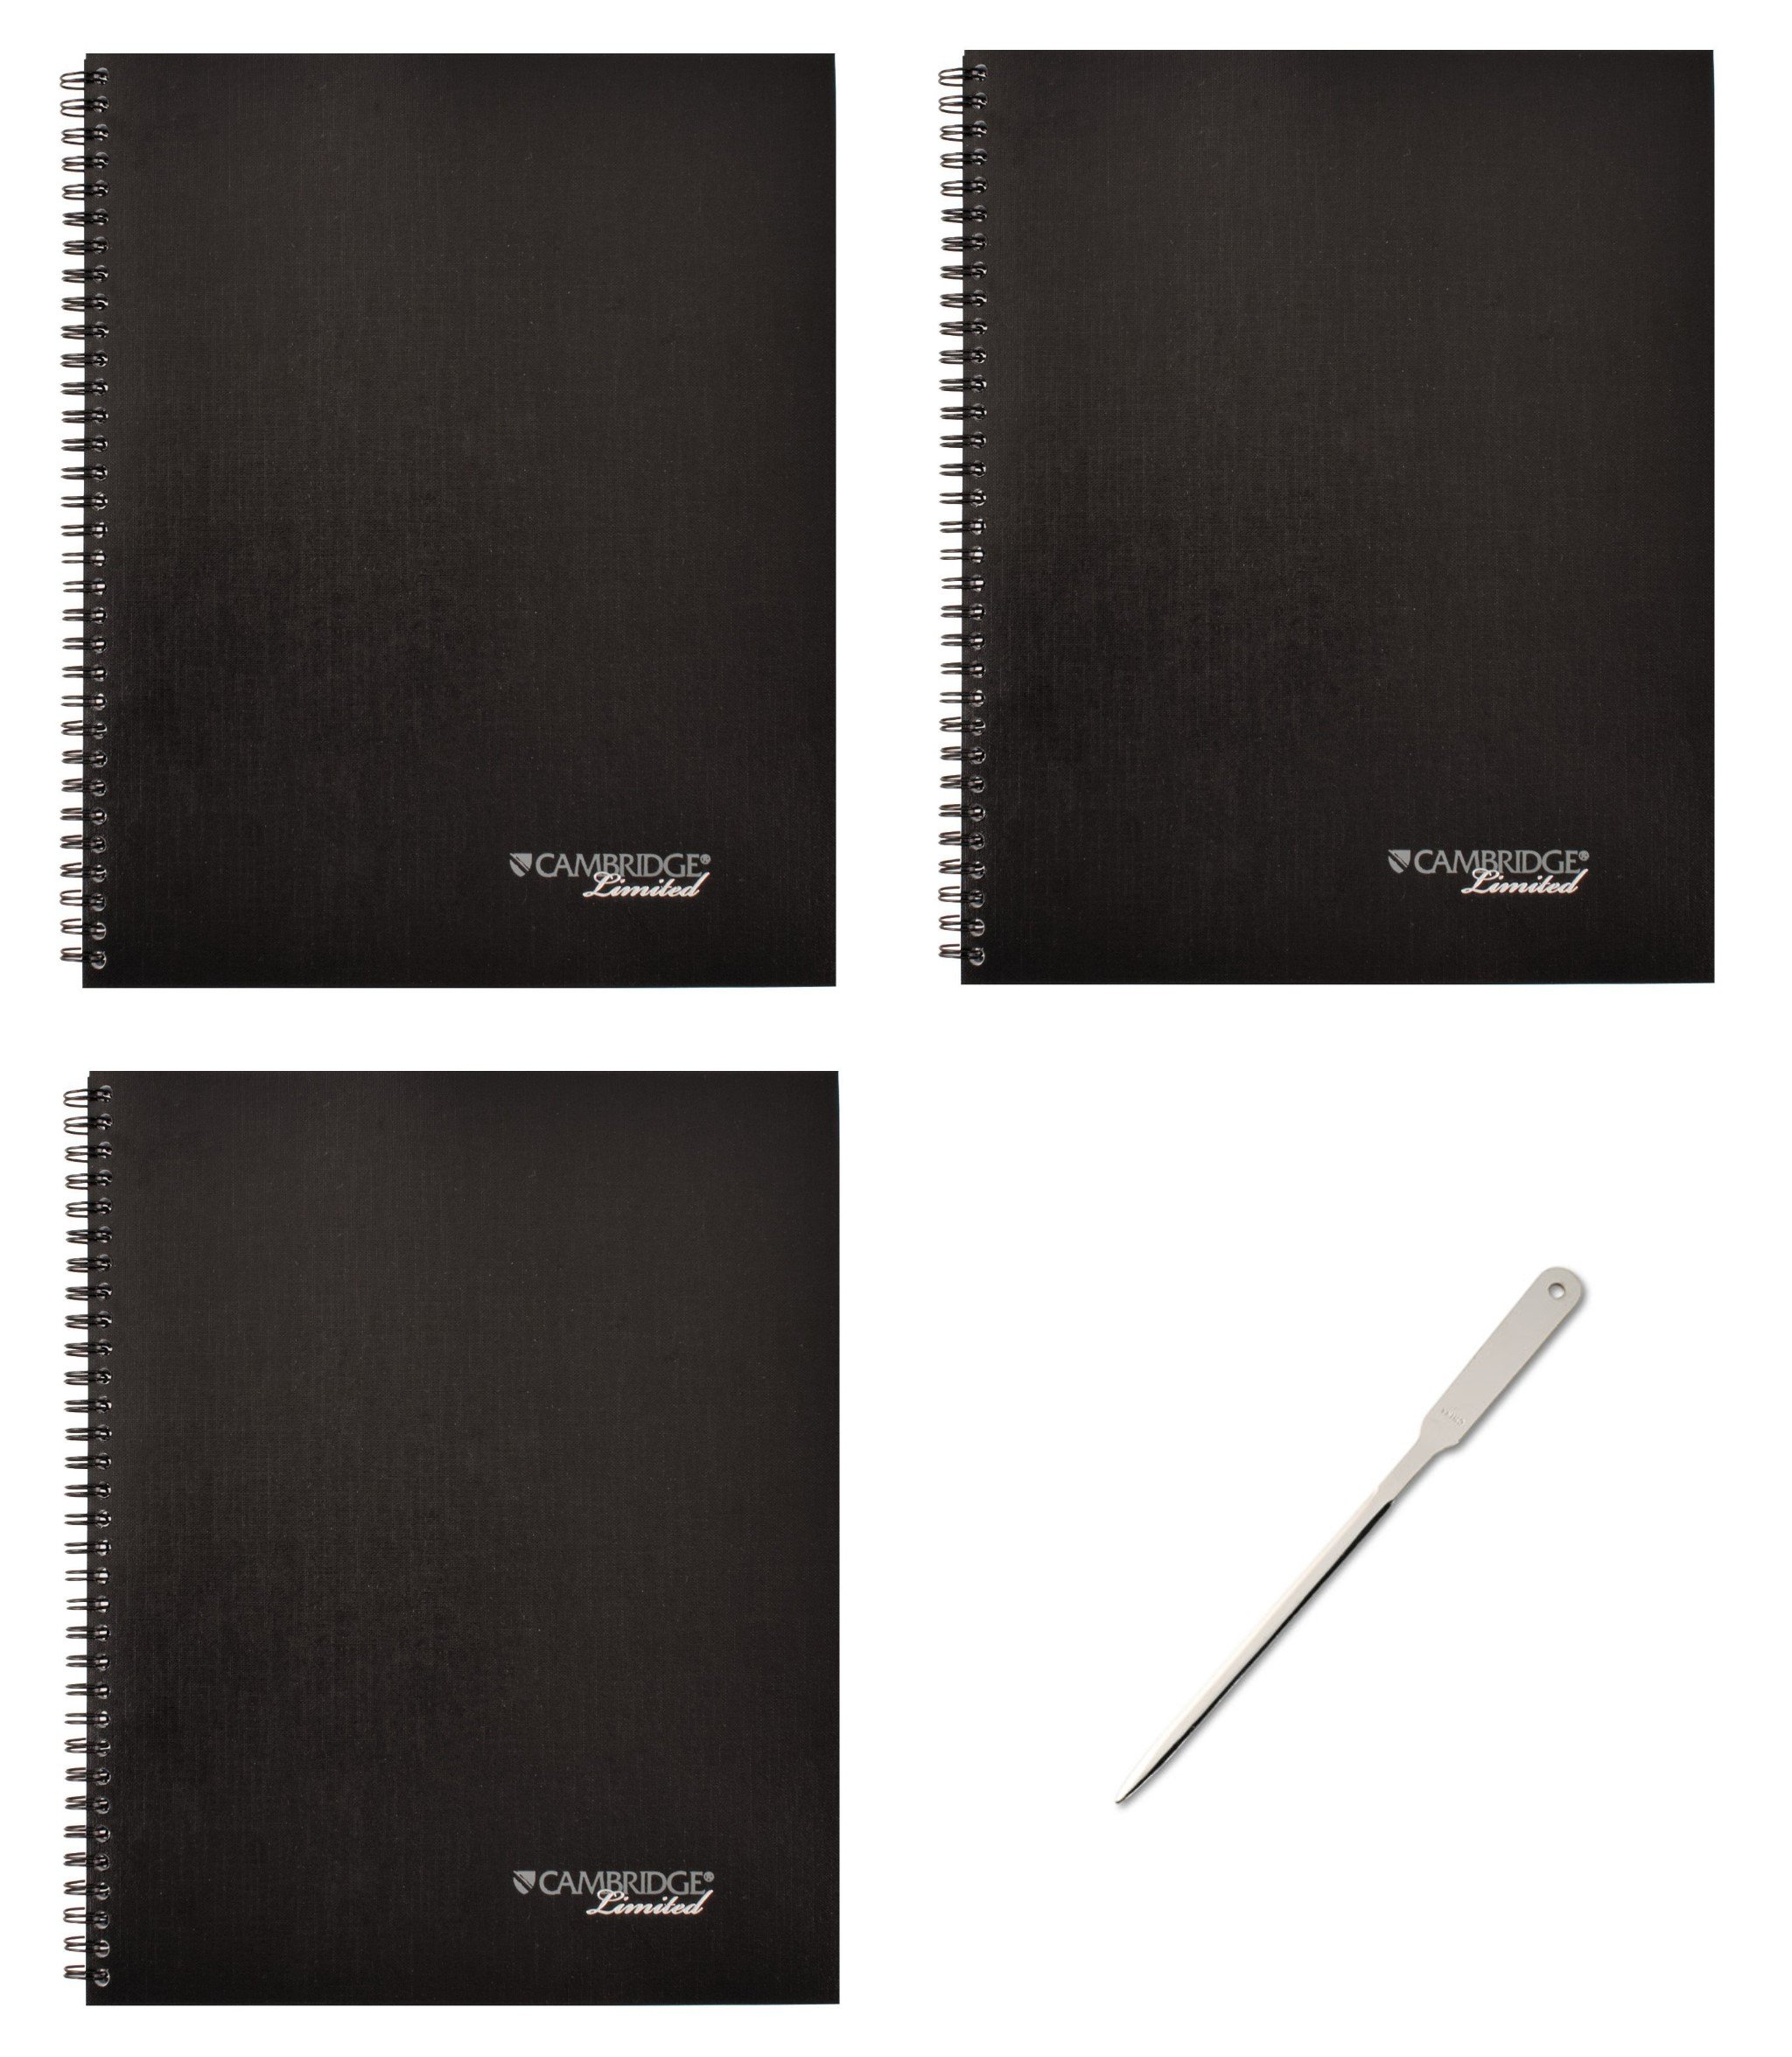 MEA06132 - Side-Bound Guided Business Notebook, 11 x 8 1/4, 80 Sheets, Pack of 3 (06132)